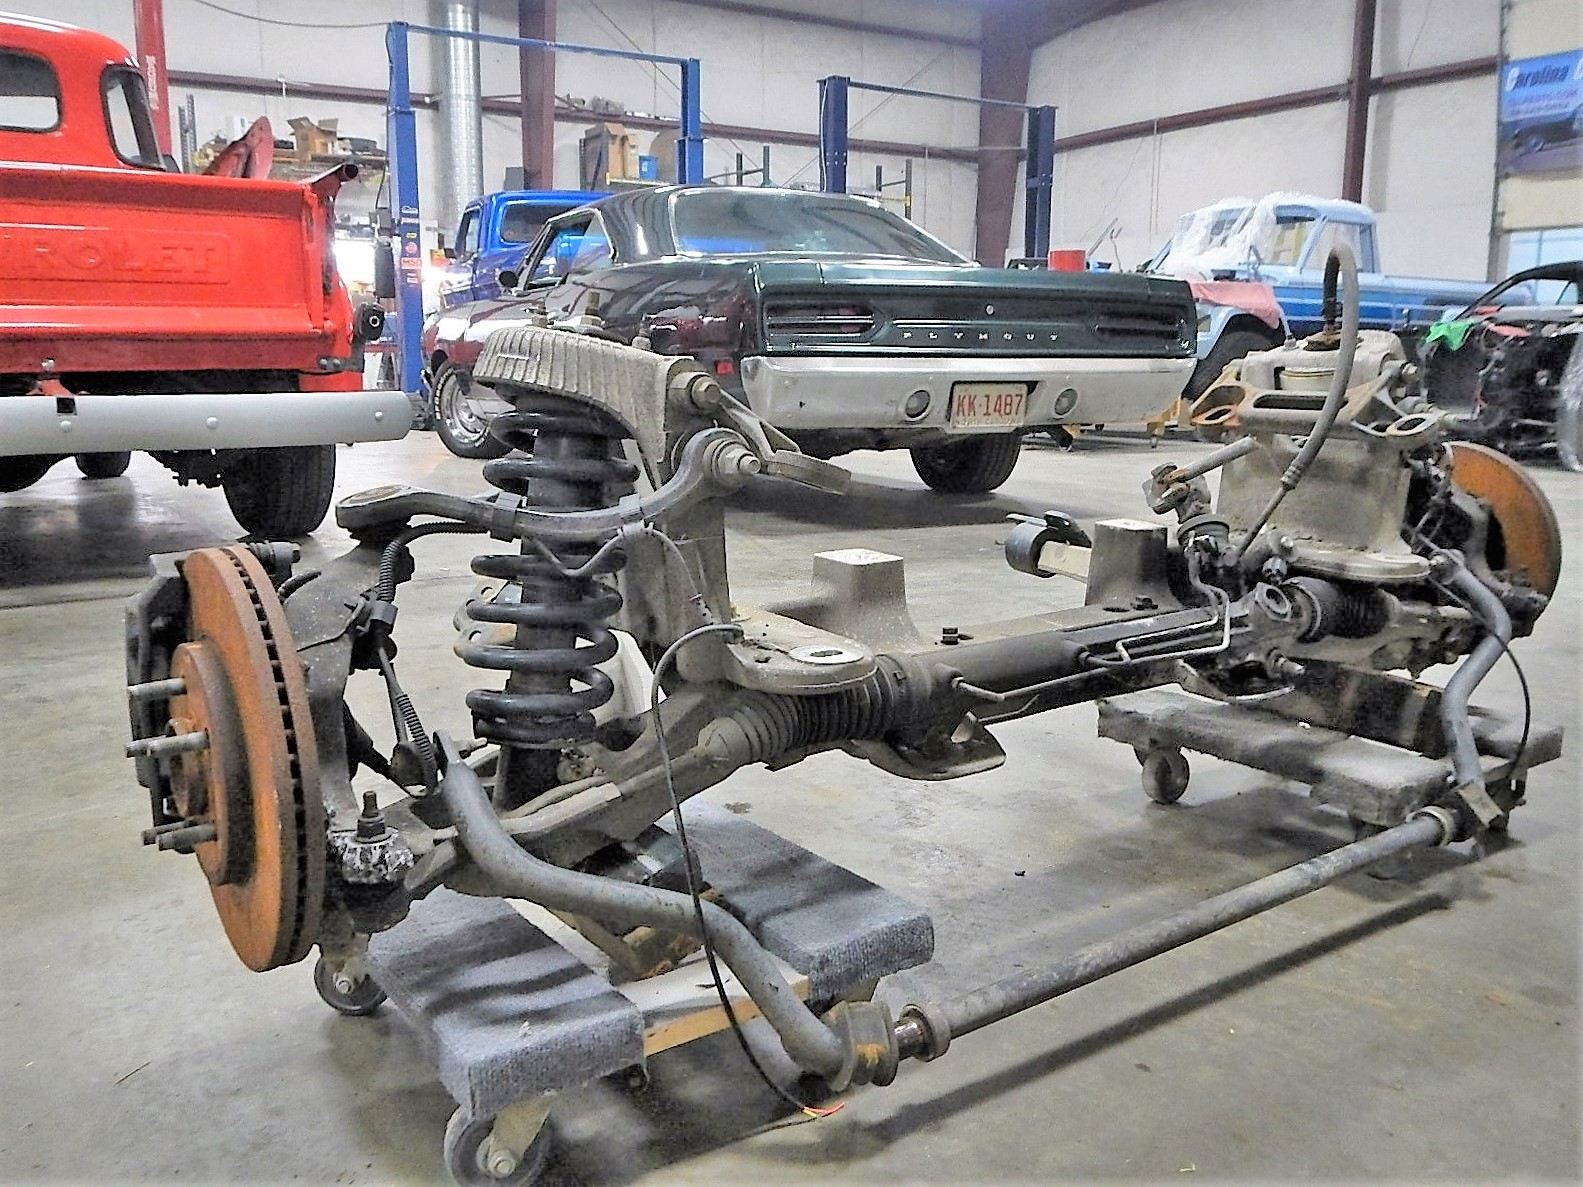 1968 Ford F-100 Front End Swap - Mercury Crown Vic  044.jpg